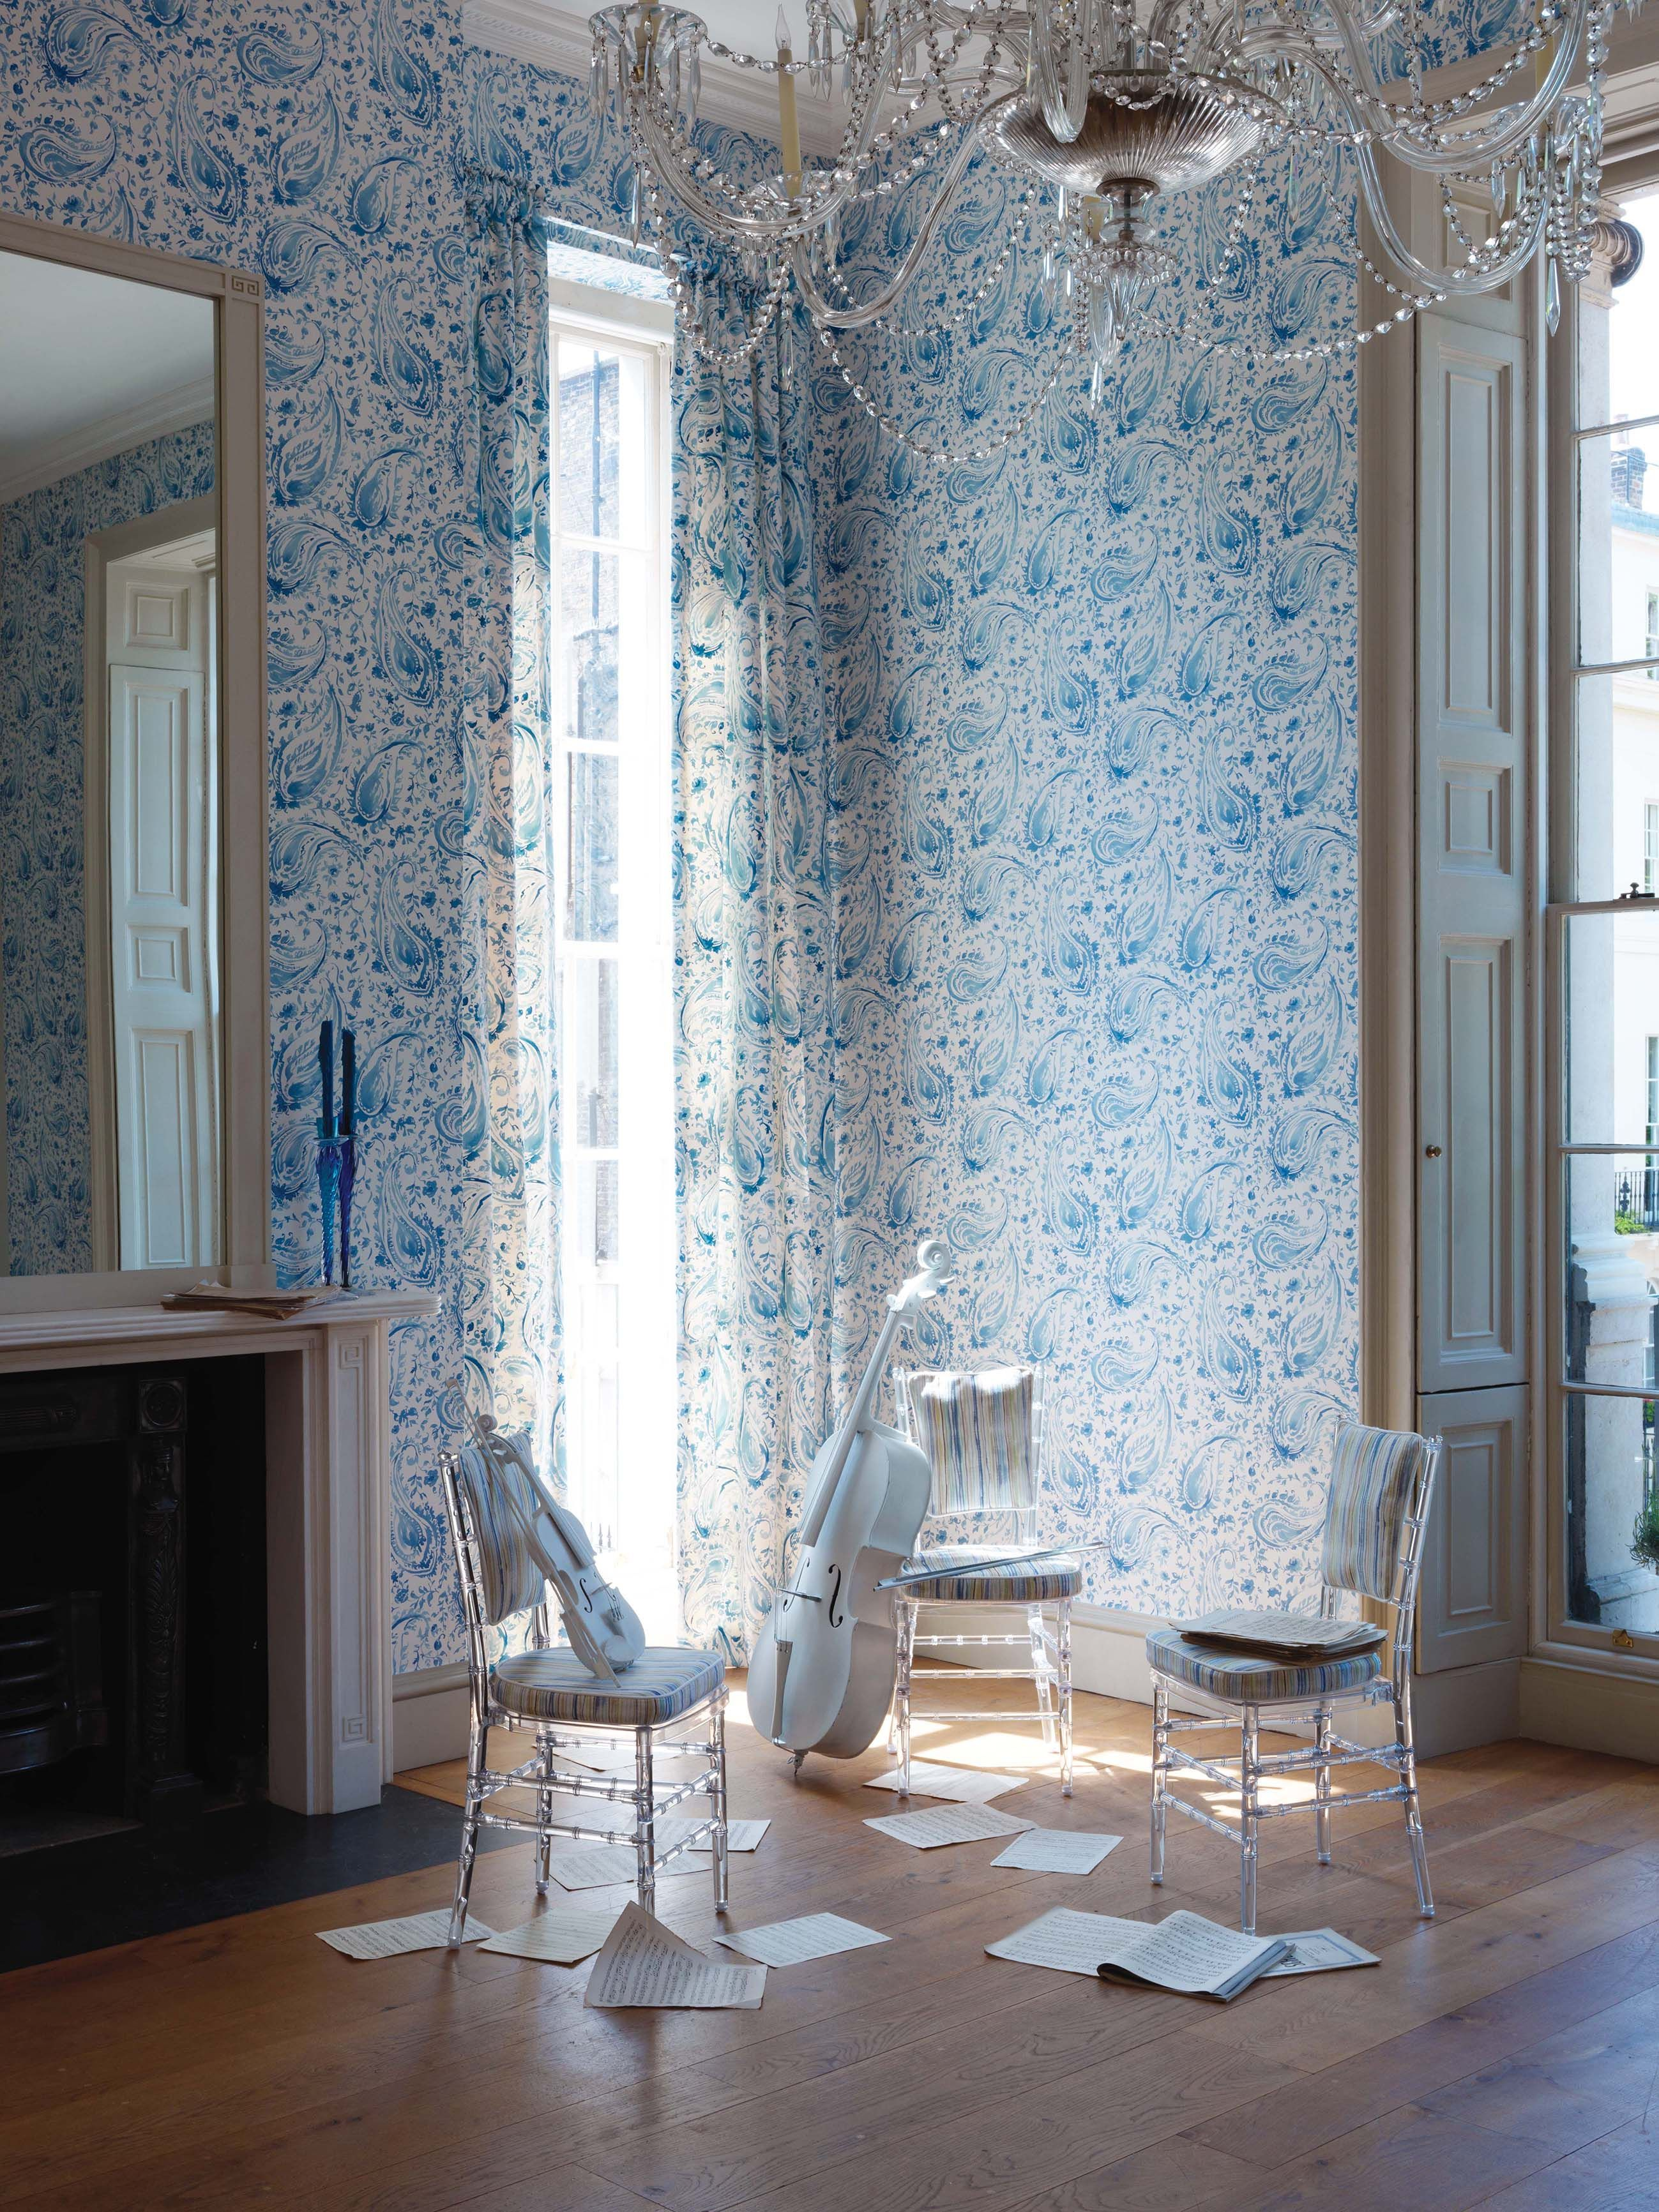 d4f2c38dddcb8 Pamir collection by Nina Campbell - available from Rodgers of York   interiors  wallpaper